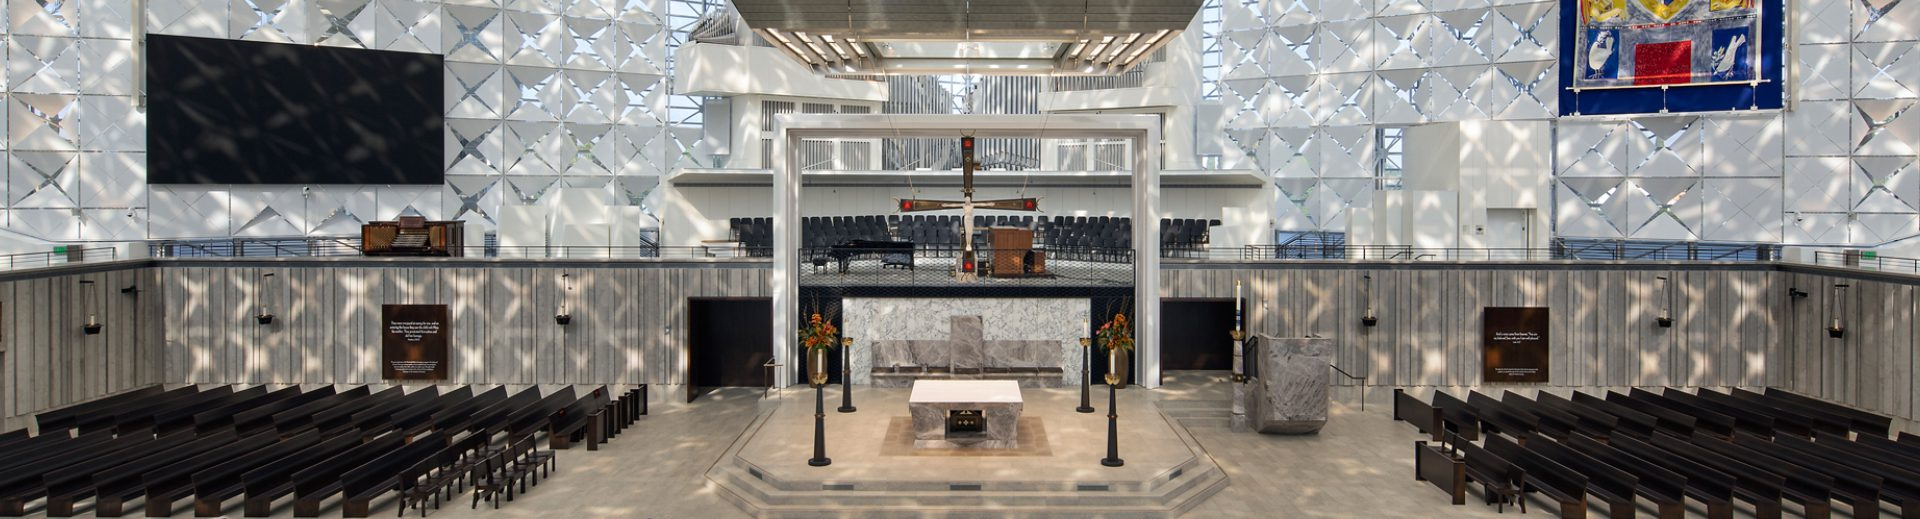 ChristCathedral2_TopBanner